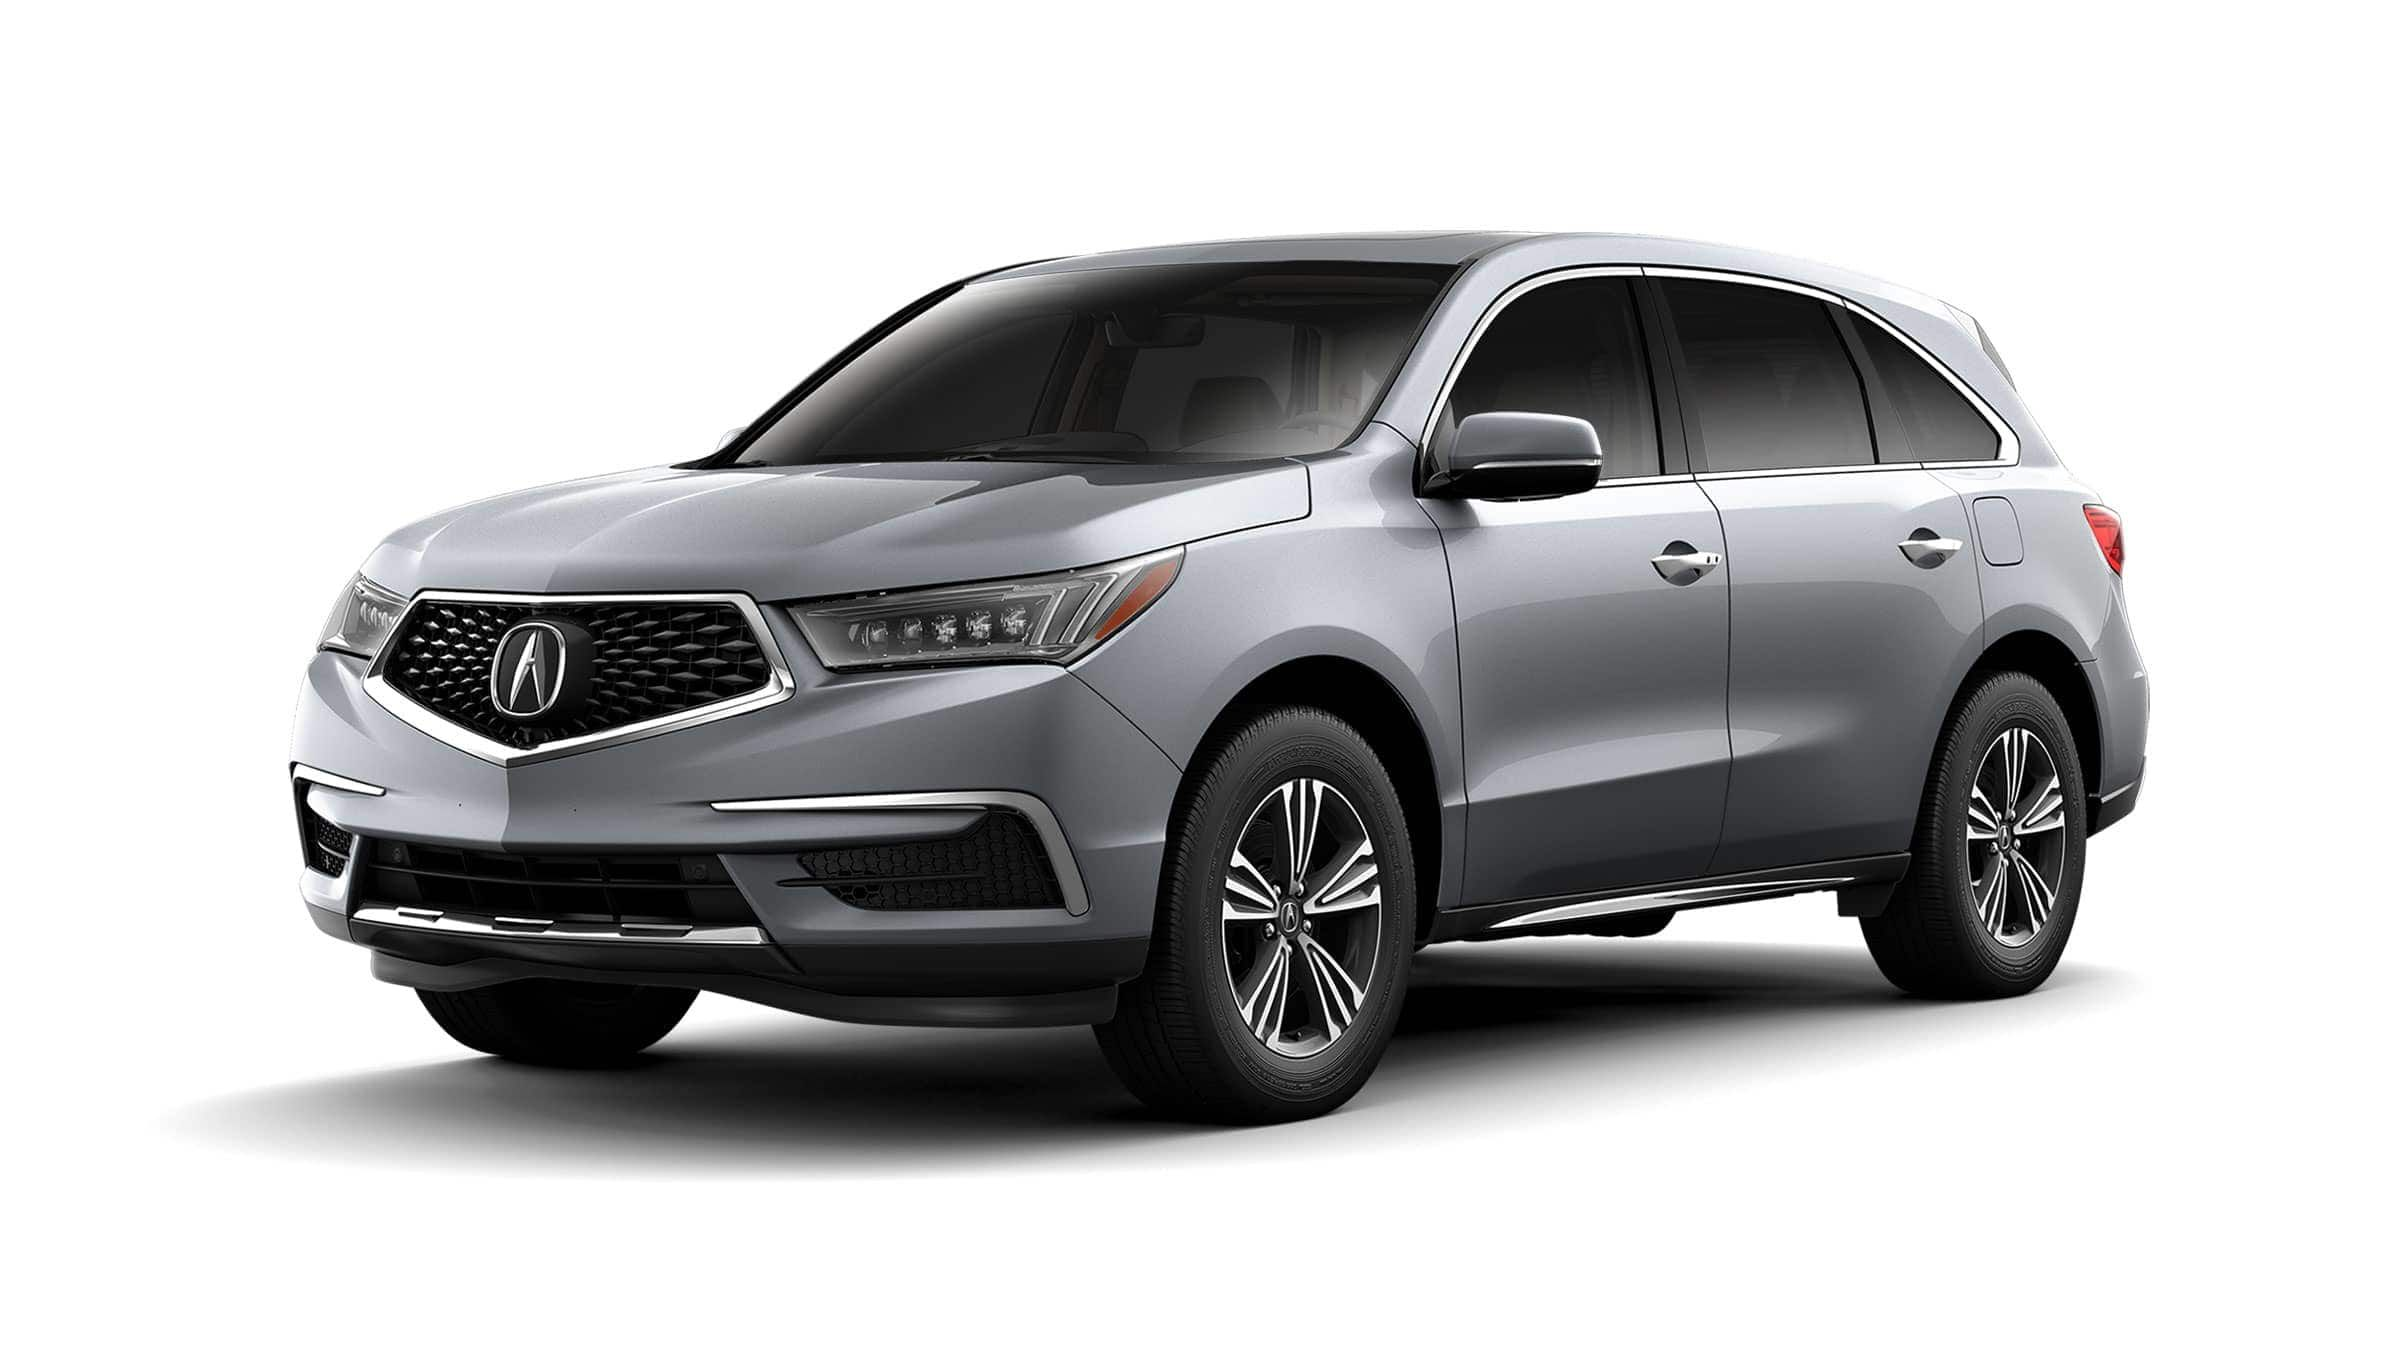 Acura Lease Offers Deals All Vehicles Acura Com Acura Mdx Hybrid Car Acura Mdx Hybrid